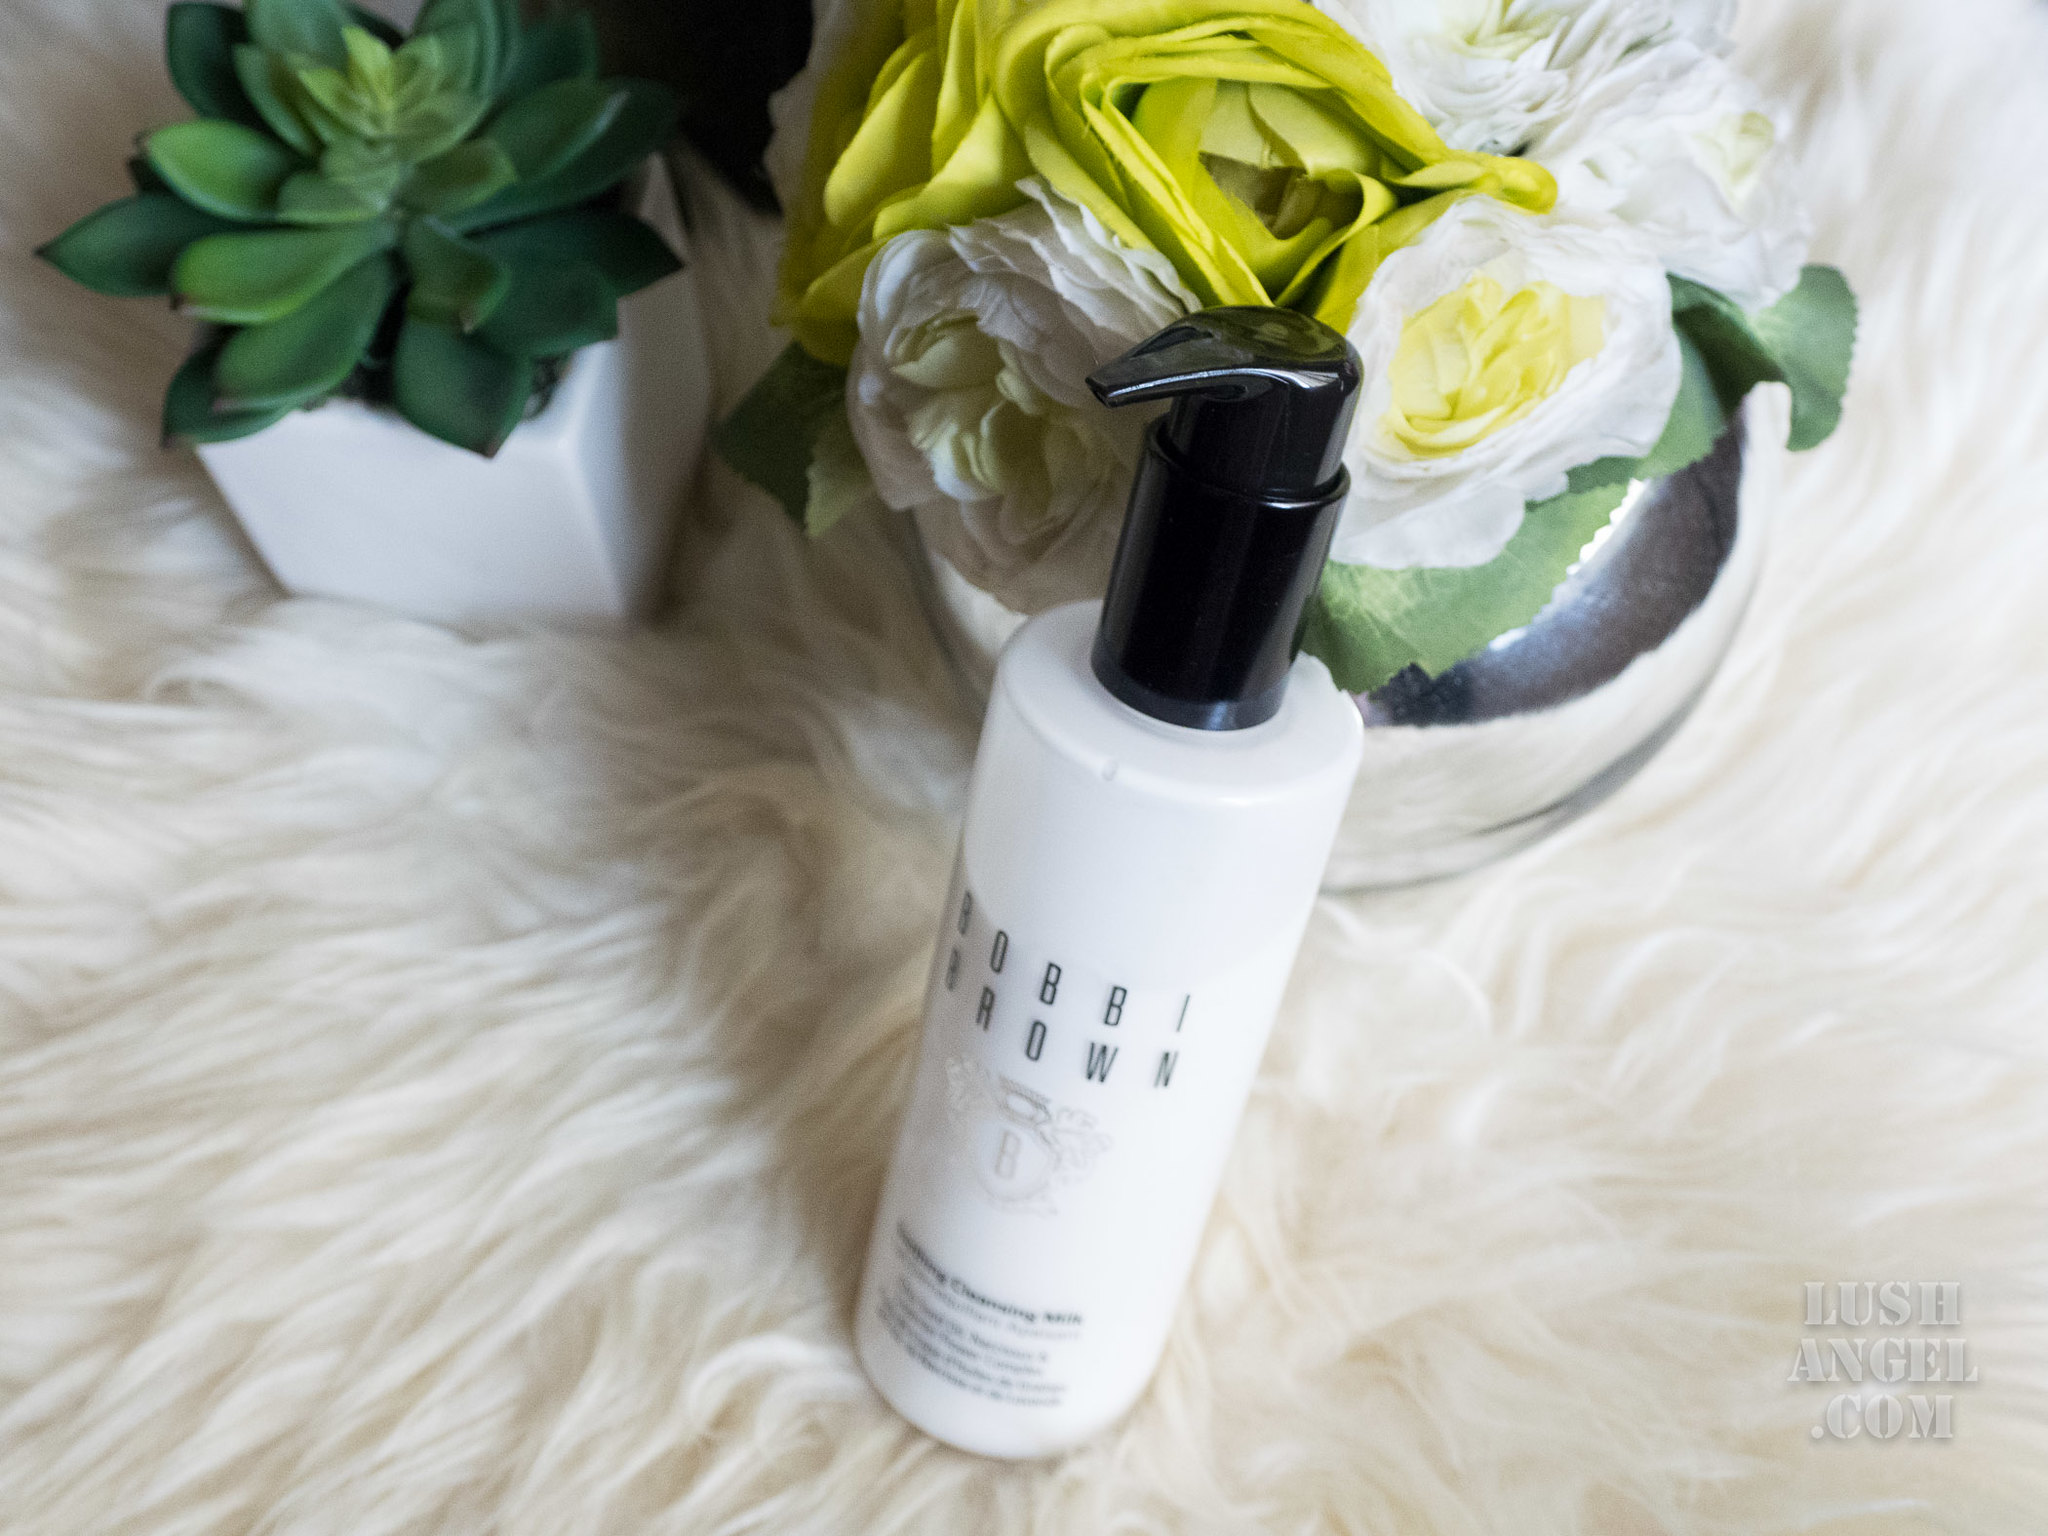 bobbi-brown-soothing-cleansing-milk-review